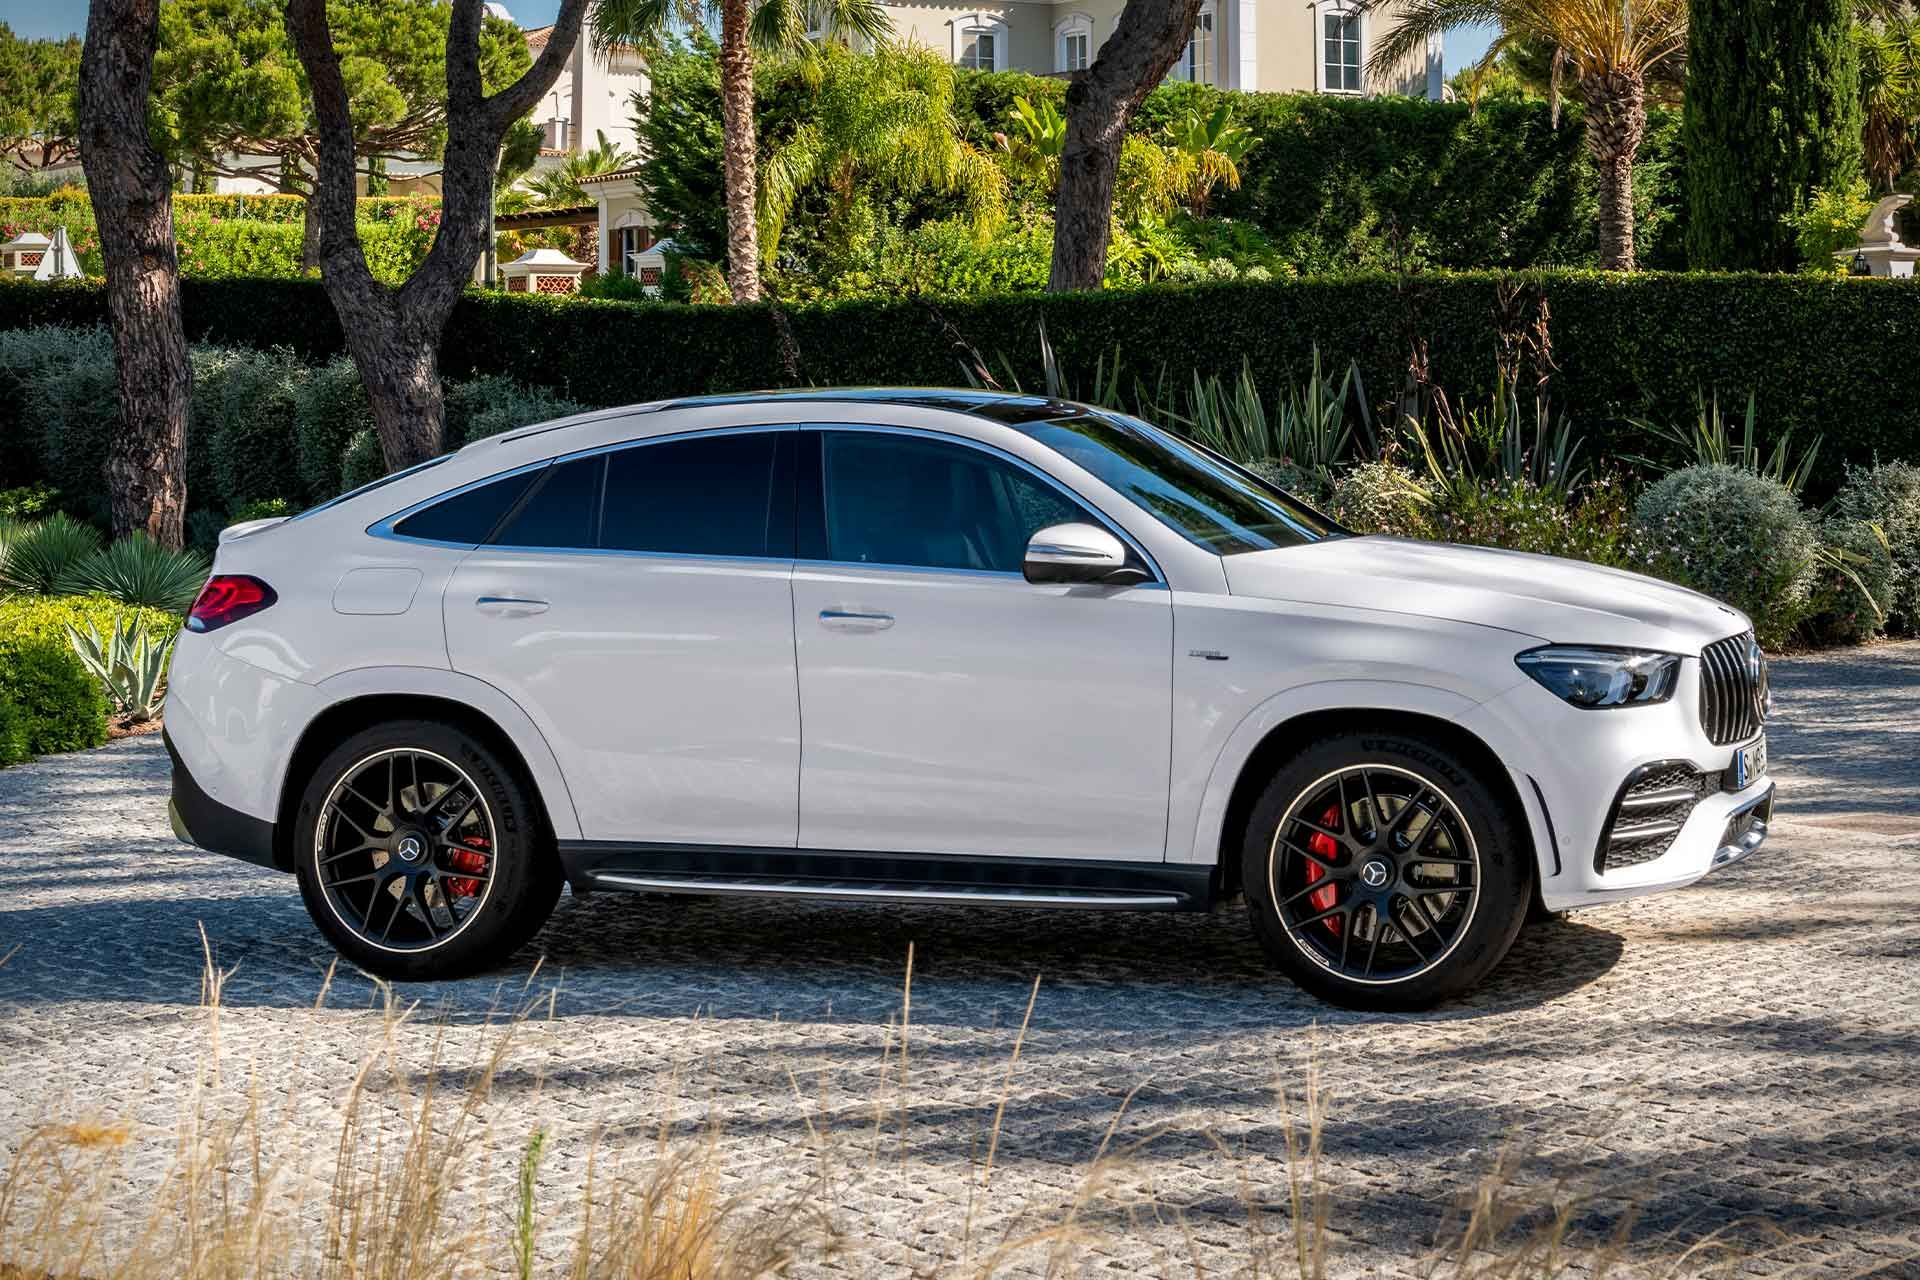 2021 Mercedes Amg Gle 53 Coupe Mercedes Benz Gle Coupe Mercedes Gle Suv Mercedes Coupe